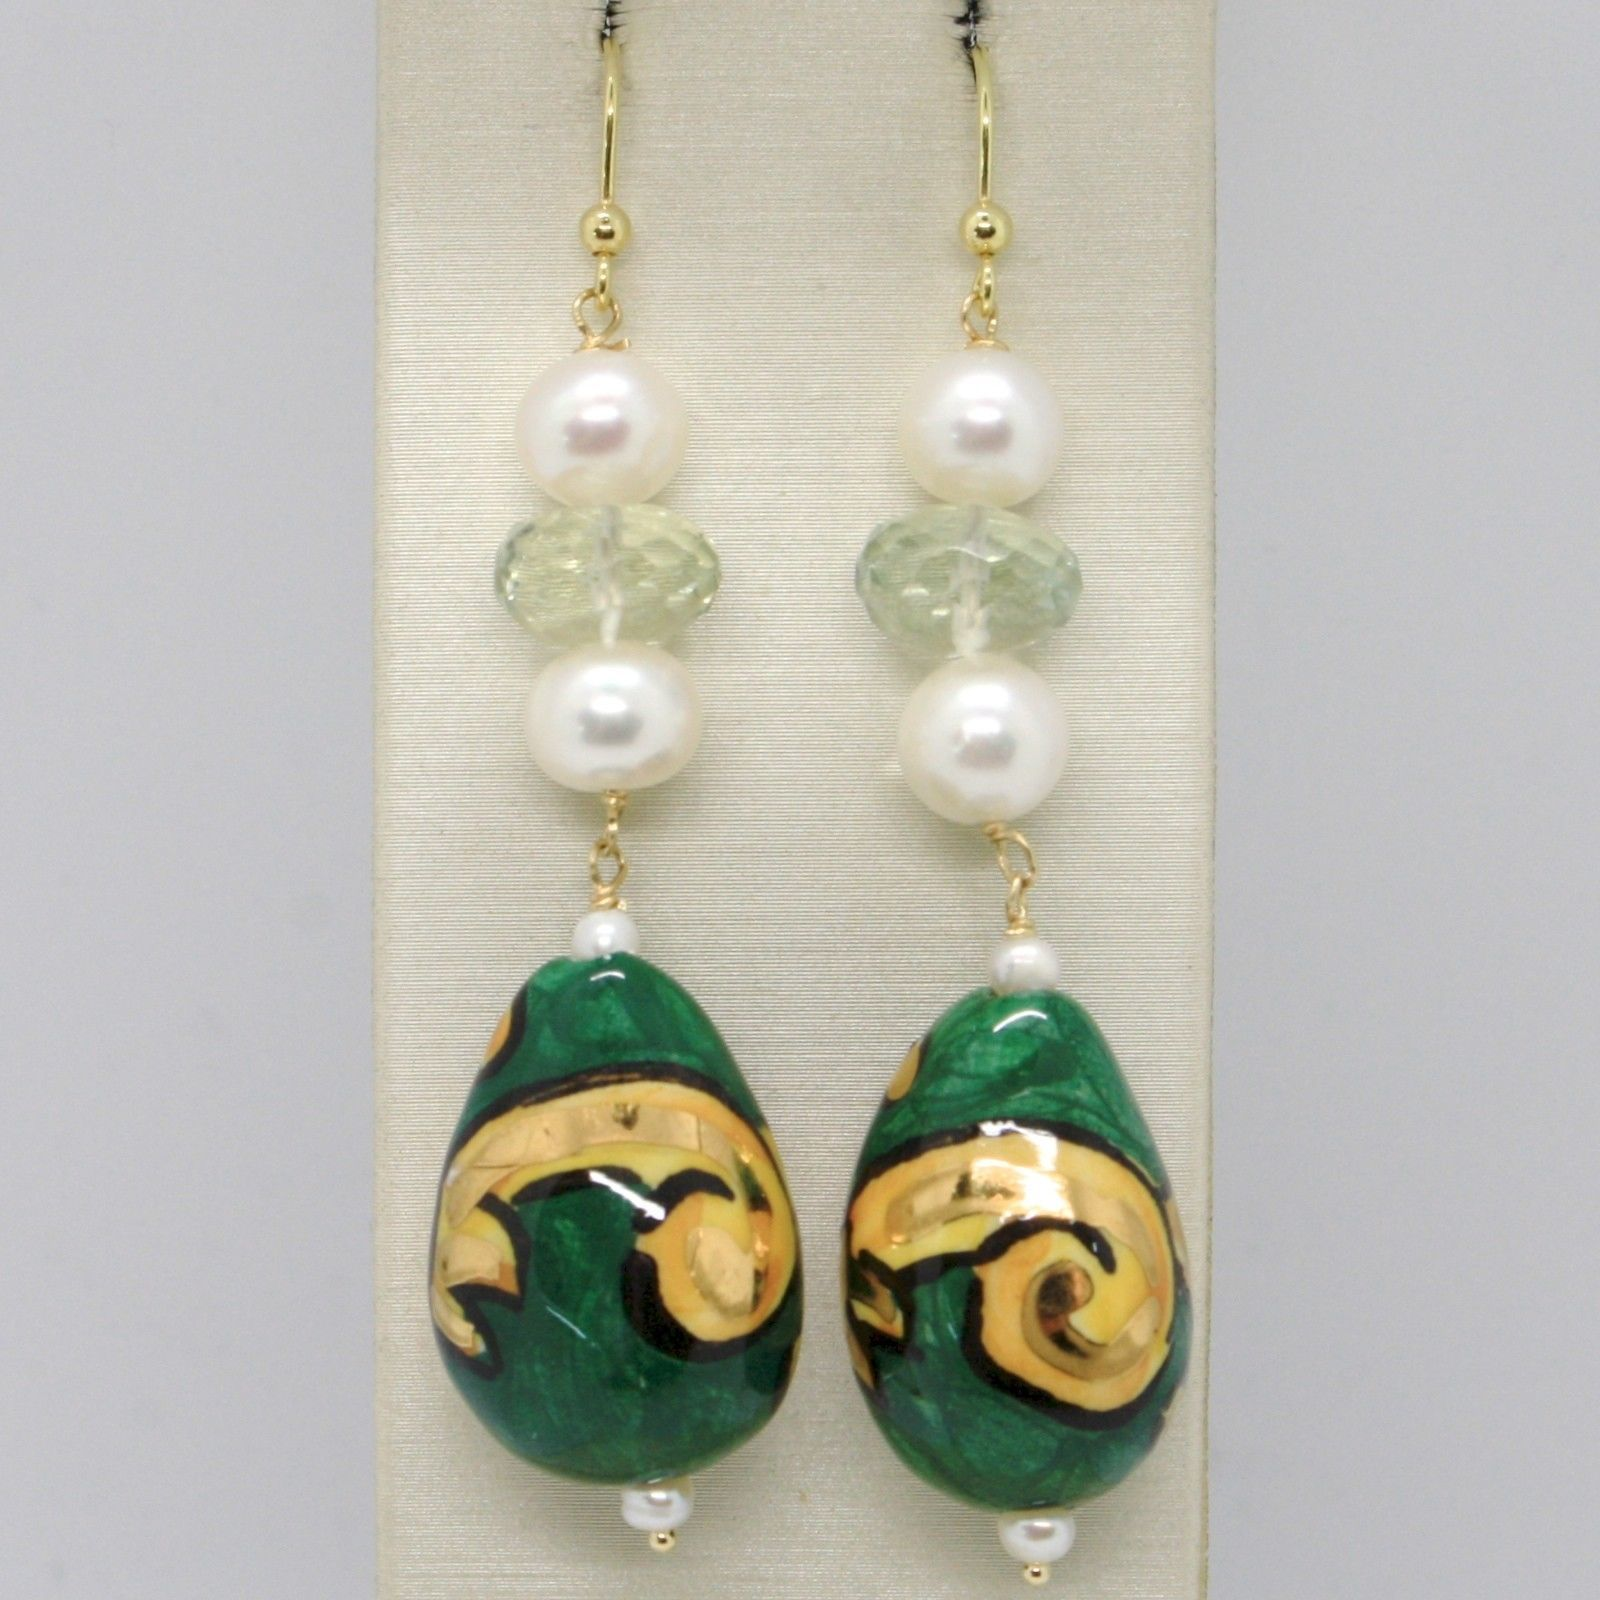 18K YELLOW GOLD EARRINGS PRASIOLITE PEARL CERAMIC BIG DROP HAND PAINTED IN ITALY